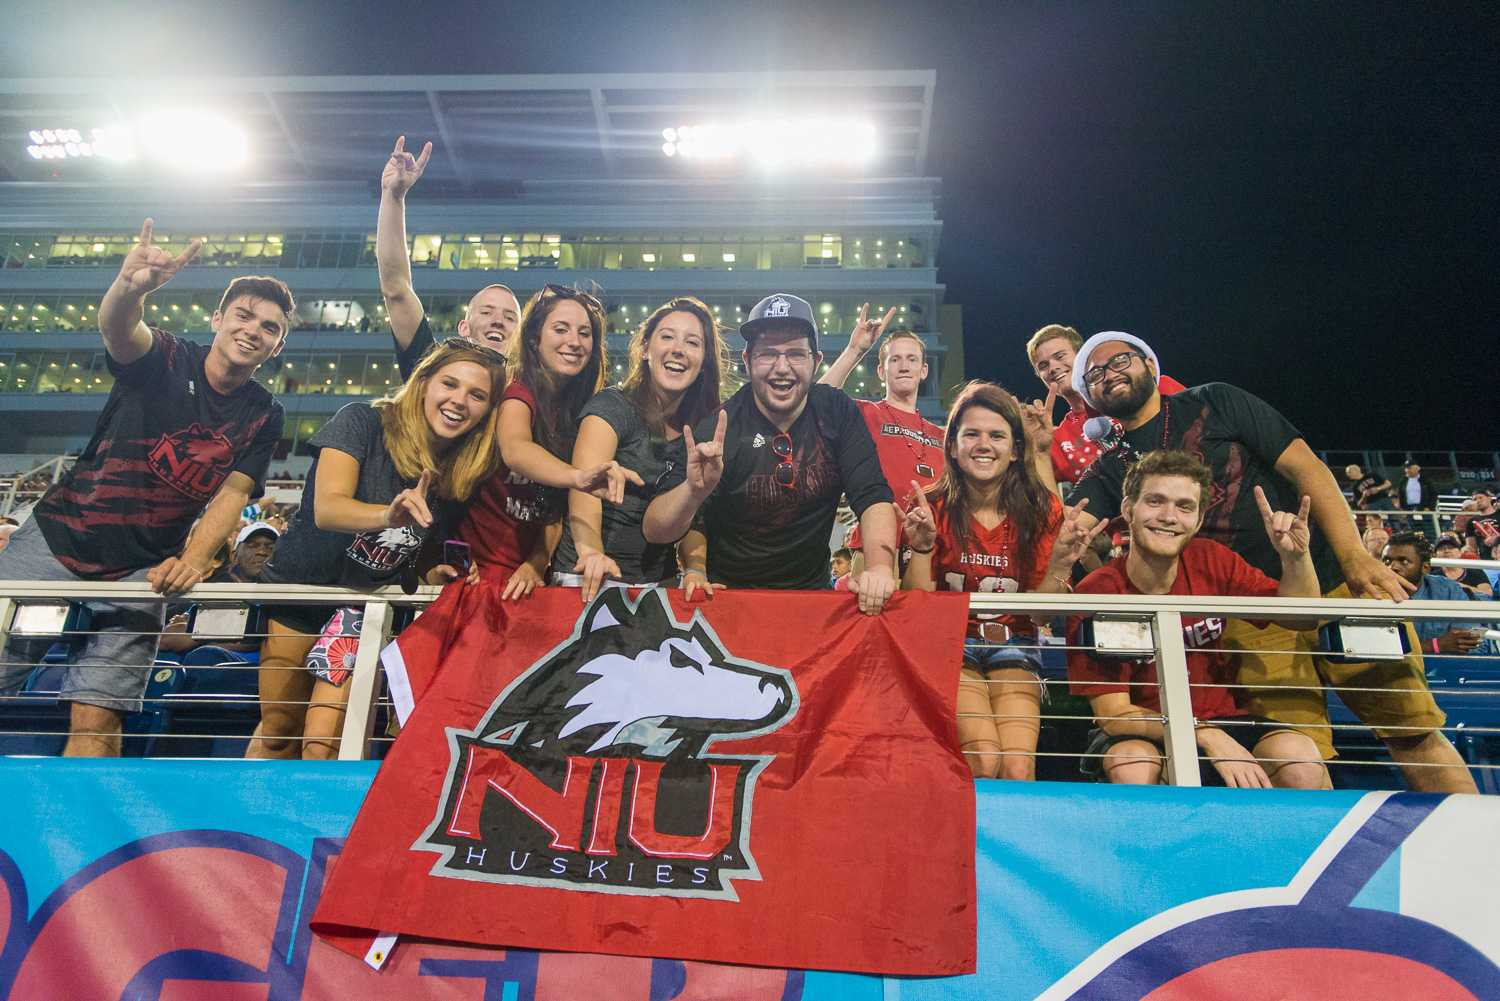 Northern Illinois Huskies fans cheer on their team in the first-ever Boca Raton Bowl on Tuesday evening, Dec 23.  The high in Dekalb on game day was 46.1 degrees, while the high in Boca Raton was 80.4 degrees.